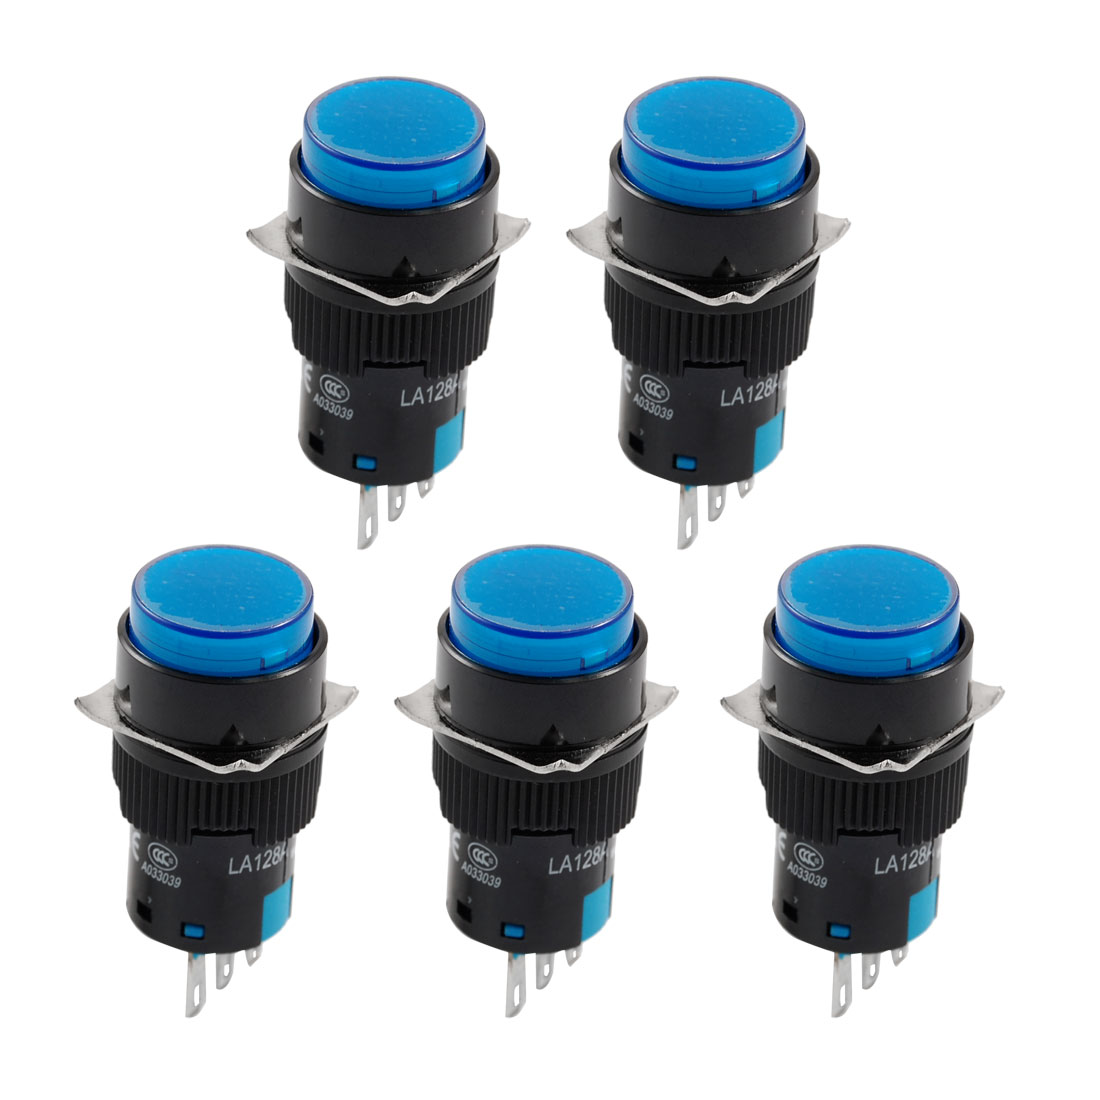 5 x Blue Round Cap Momentary 1NO+1NC Panel Push Button Switch AC 250V 5A